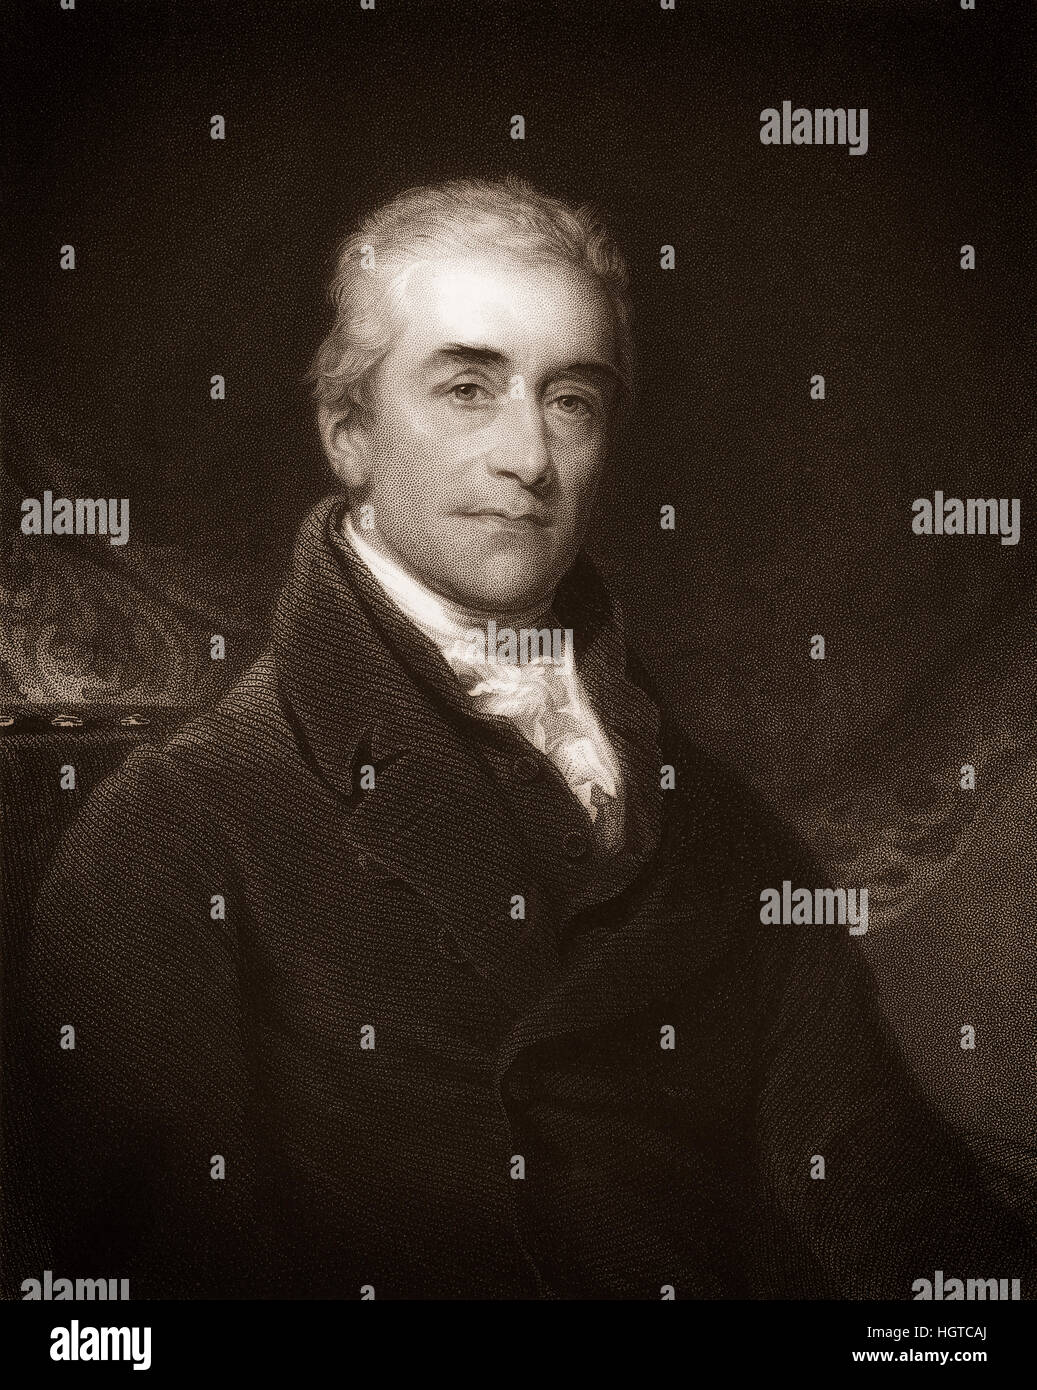 Sir Samuel Romilly, 1757-1818, a British legal reformer - Stock Image